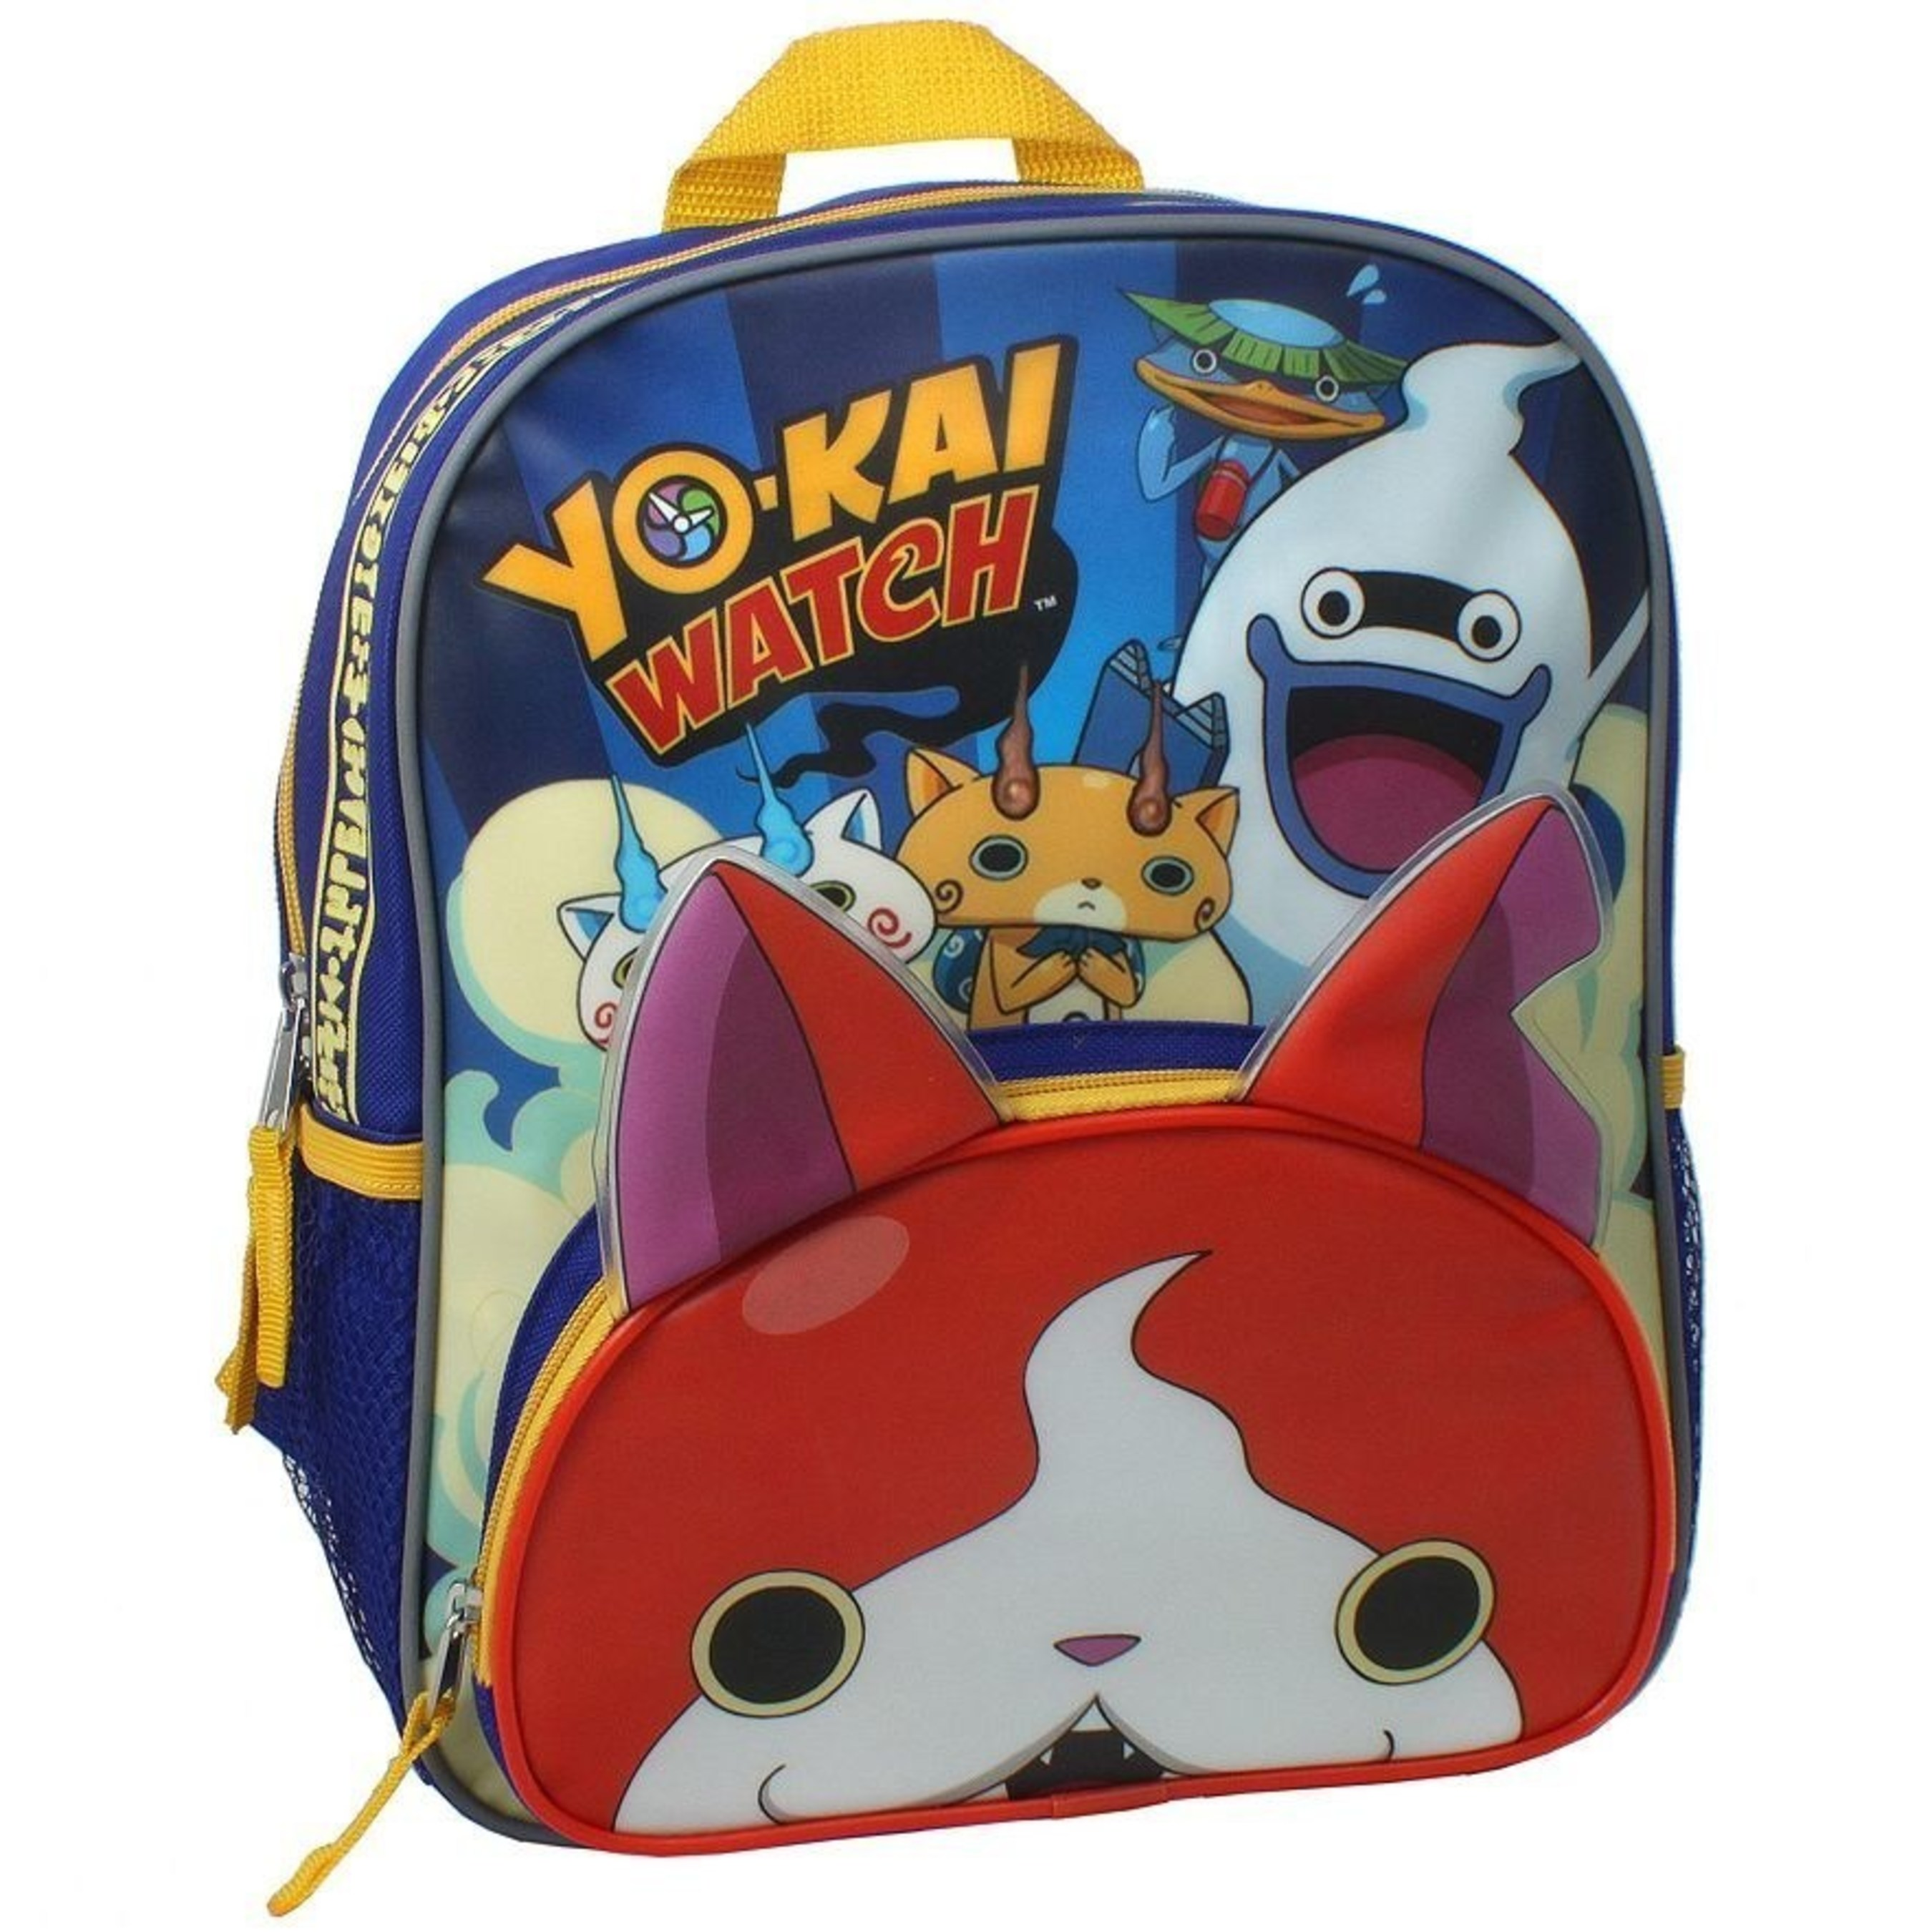 A plethora of new product is hitting stores now for back-to-school, including backpacks, accessories, apparel, sleepwear, footwear and plush, sold at major retailers including Walmart, Target, Kmart, Toys R Us and Hot Topic.